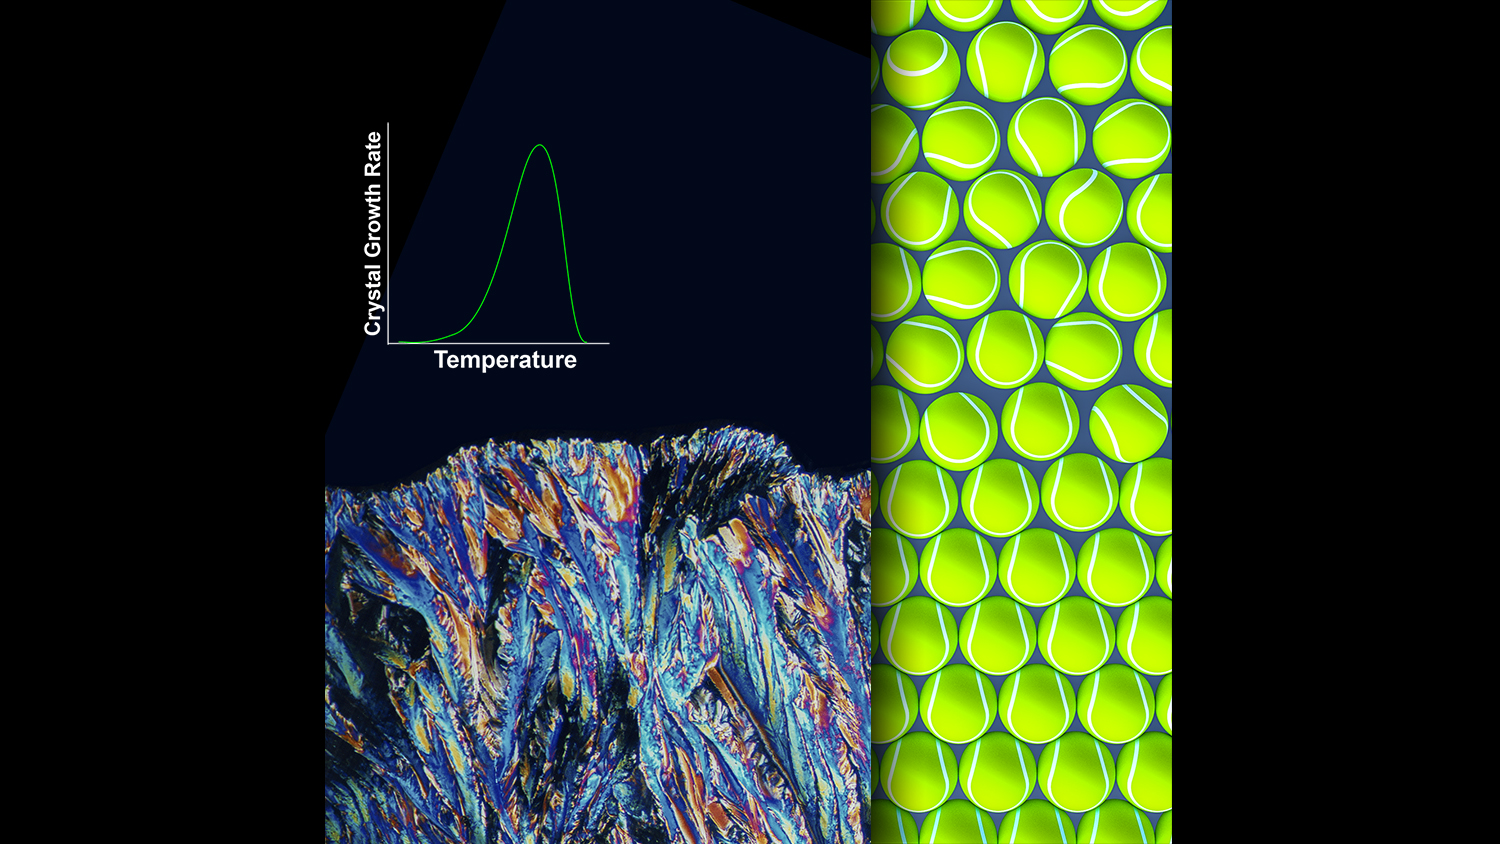 Publication Cover Art demonstrating both a macroscopic and atomistic view of the organizational process involved to transform a melt into a crystal.